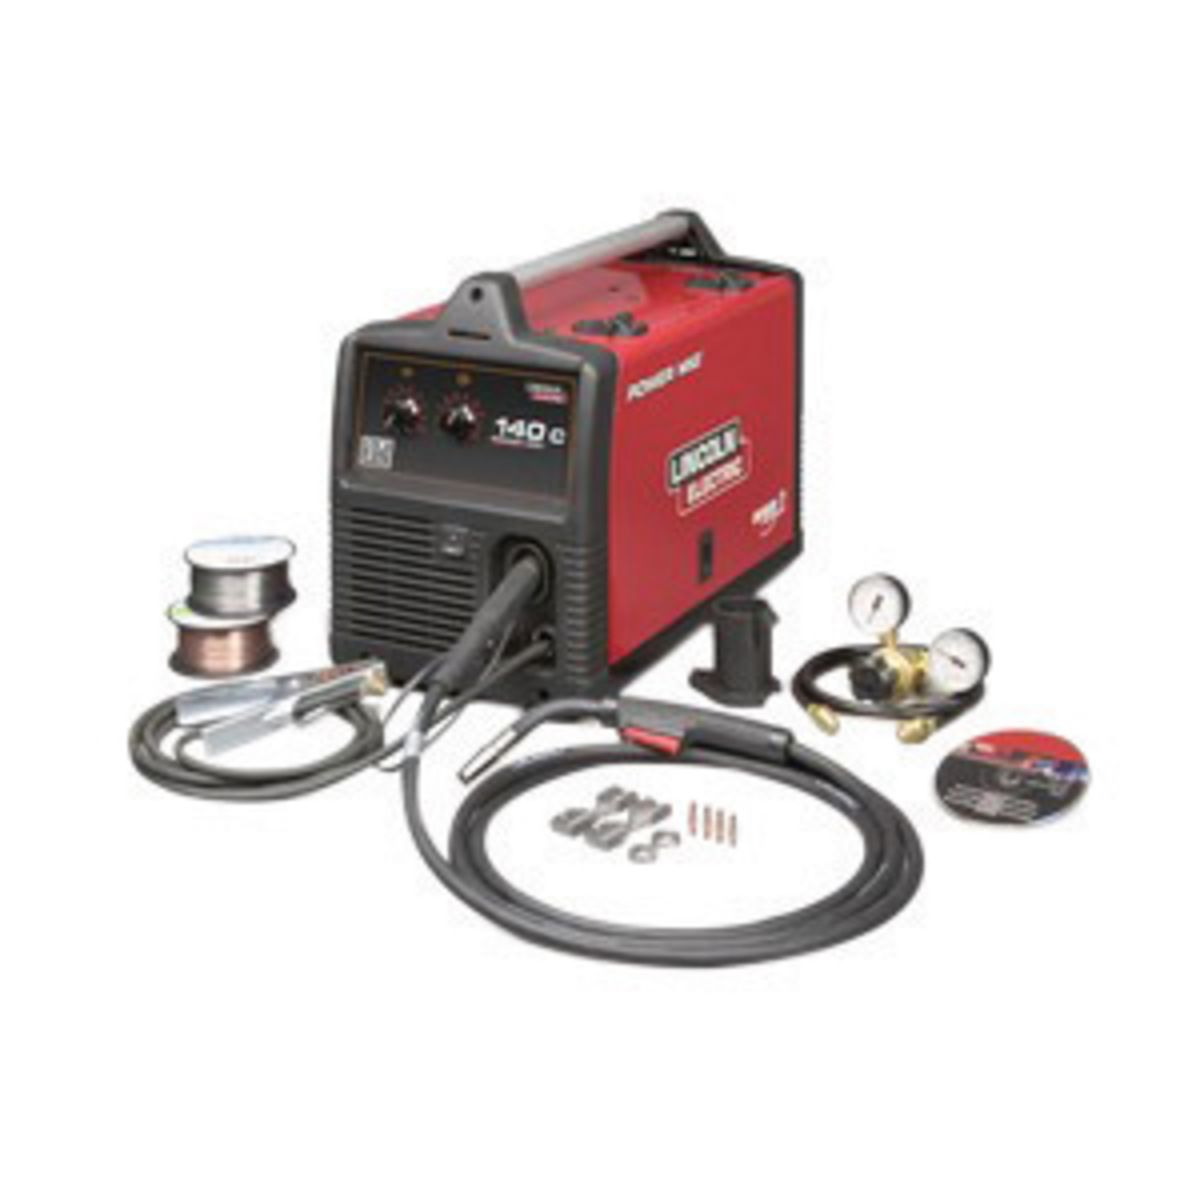 Airgas - LINK2471-2 - Lincoln Electric® Power MIG® 140C MIG Welder ...